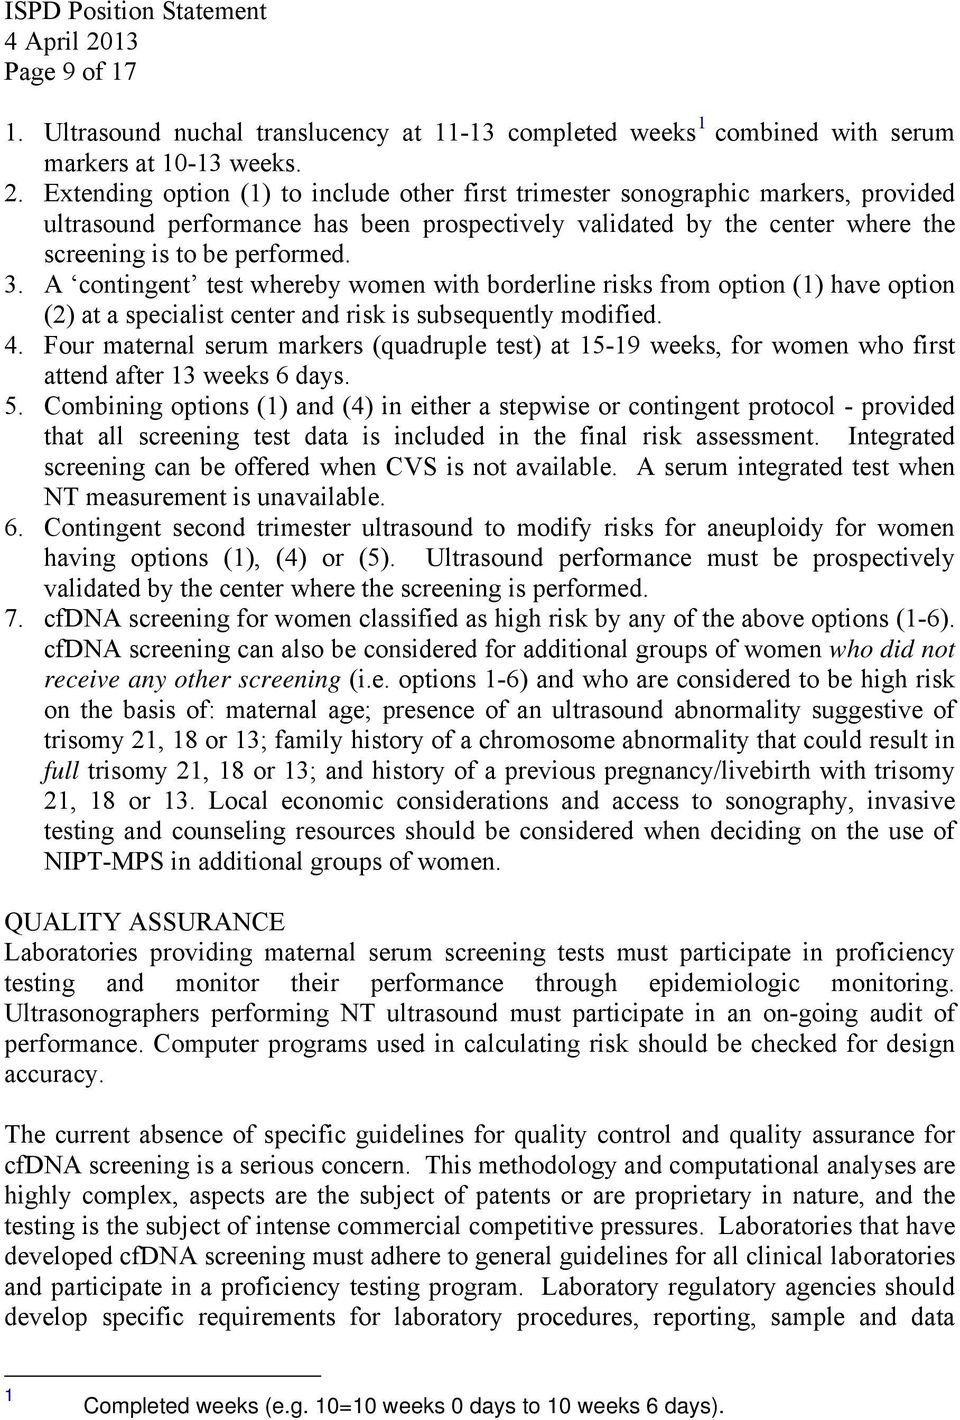 A contingent test whereby women with borderline risks from option (1) have option (2) at a specialist center and risk is subsequently modified. 4.